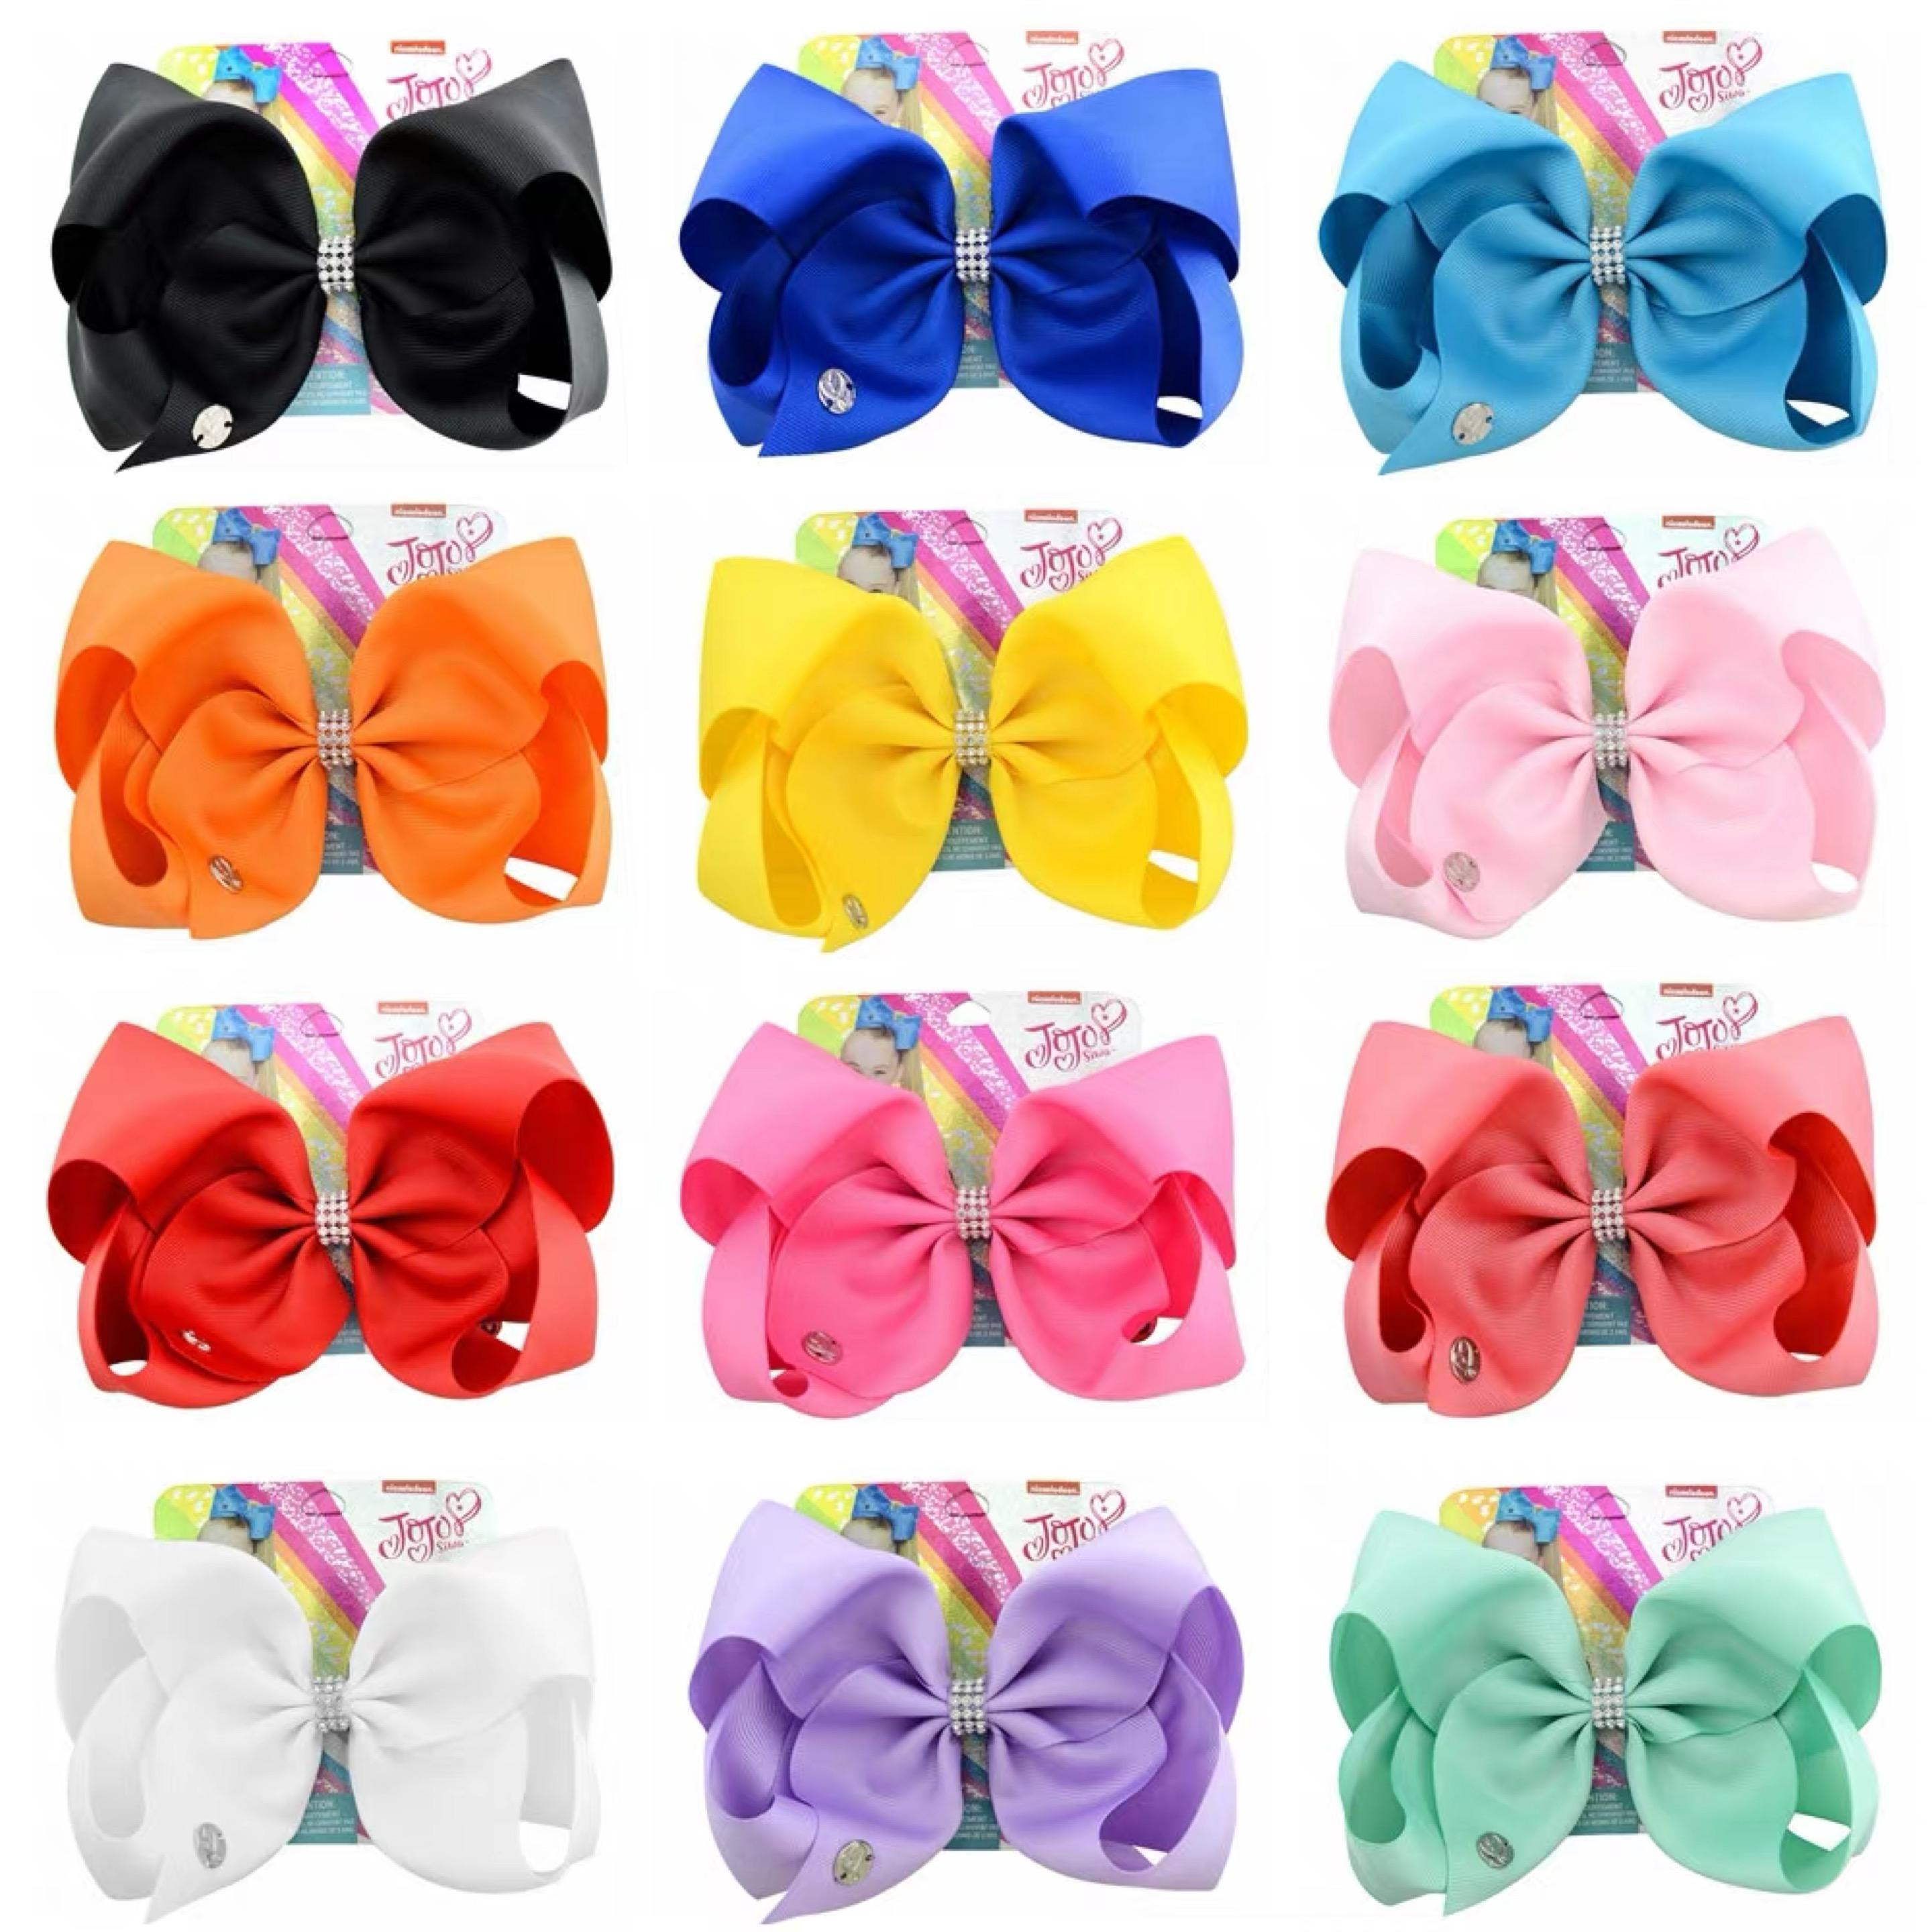 57571fa605aa Girls Hair Clips and Bands for sale - Girls Hair Accessories Online ...